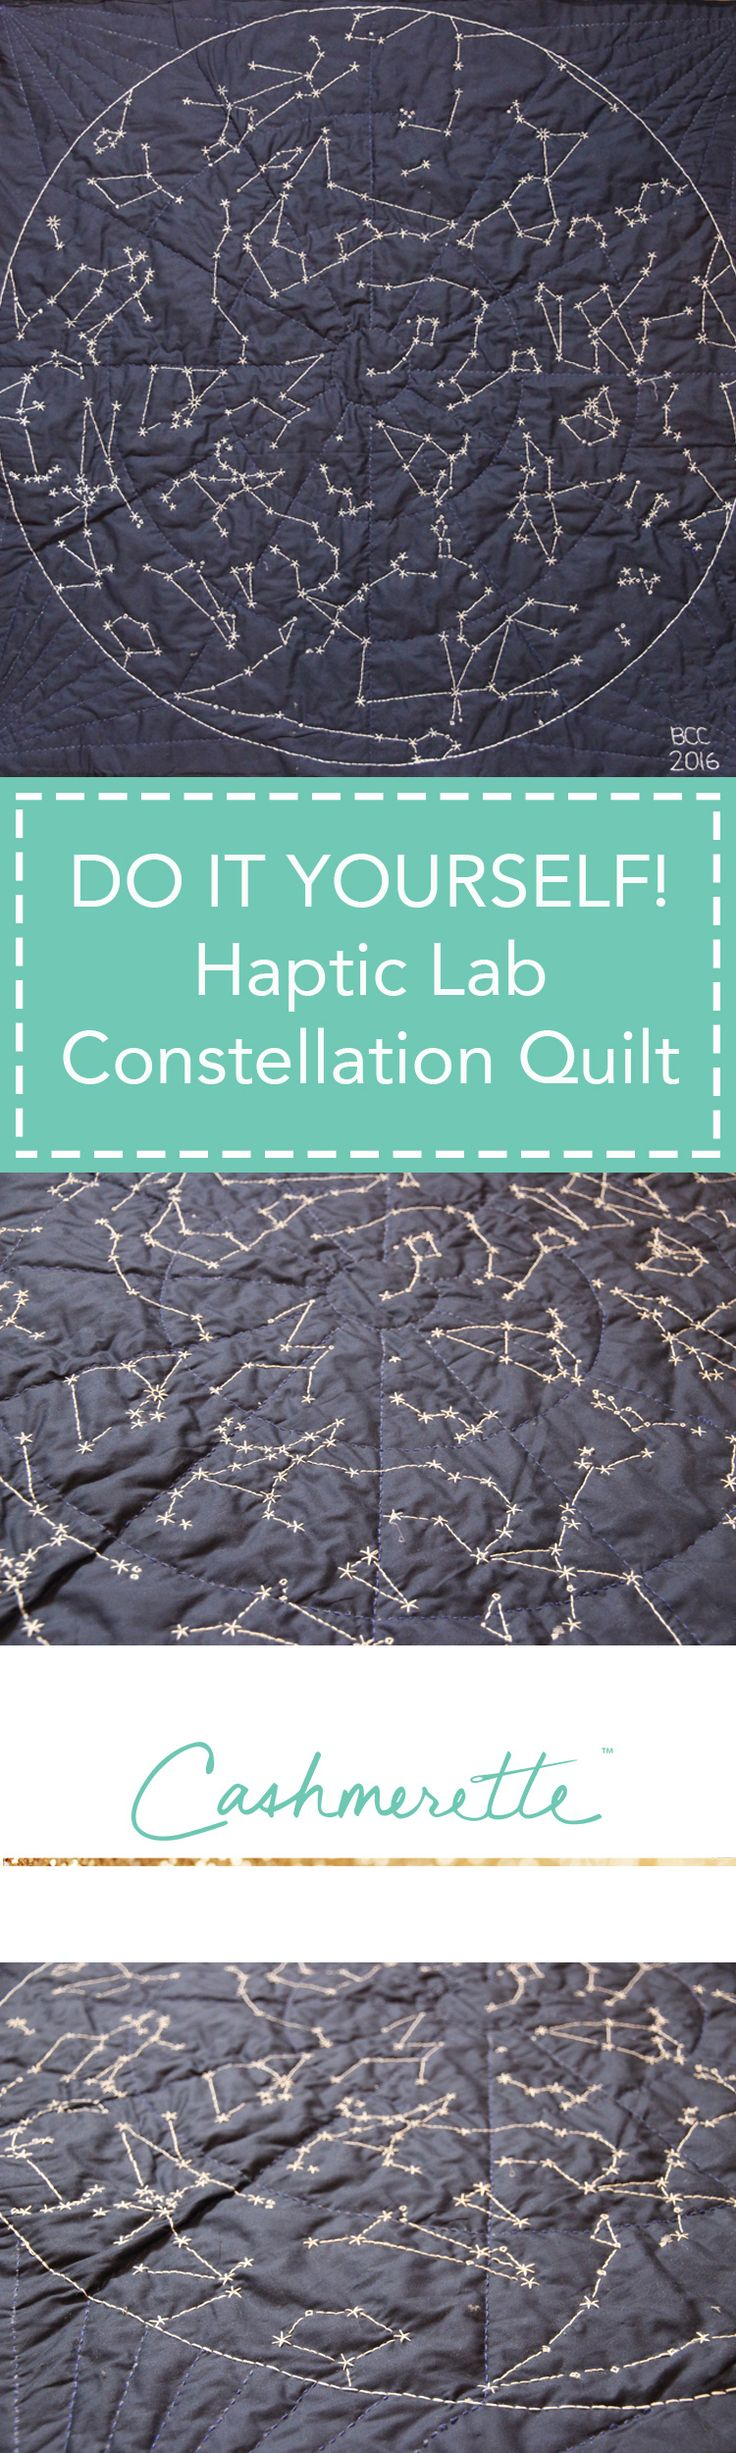 DIY Constellation Hand Quilt by Cashmerette